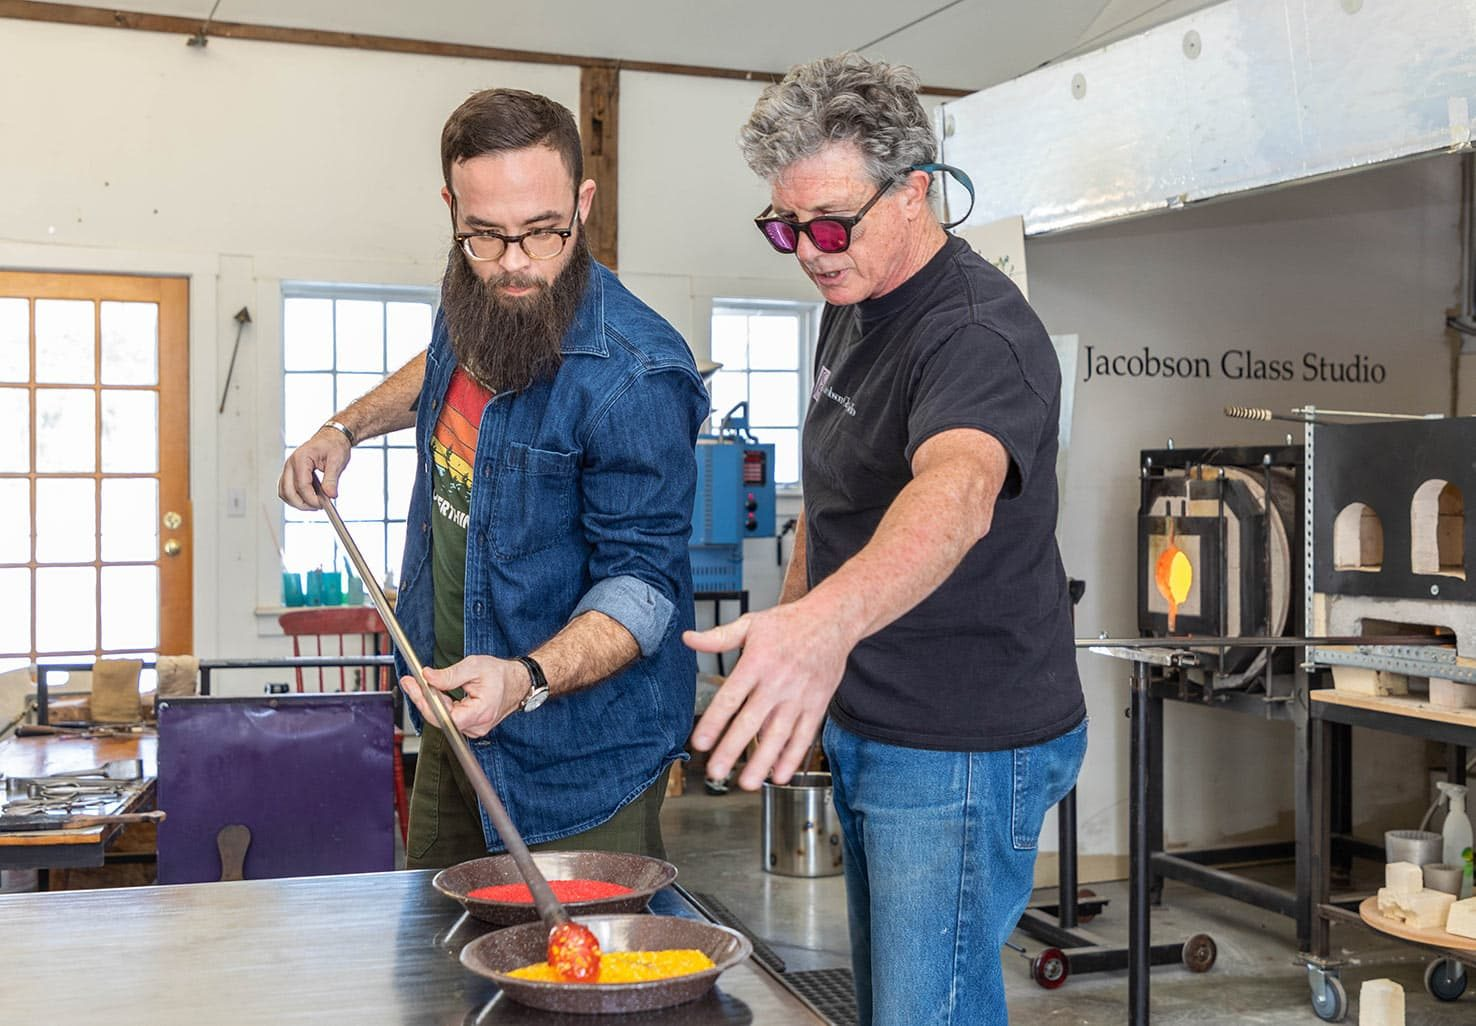 Man teaching another man the art of Glass Blowing